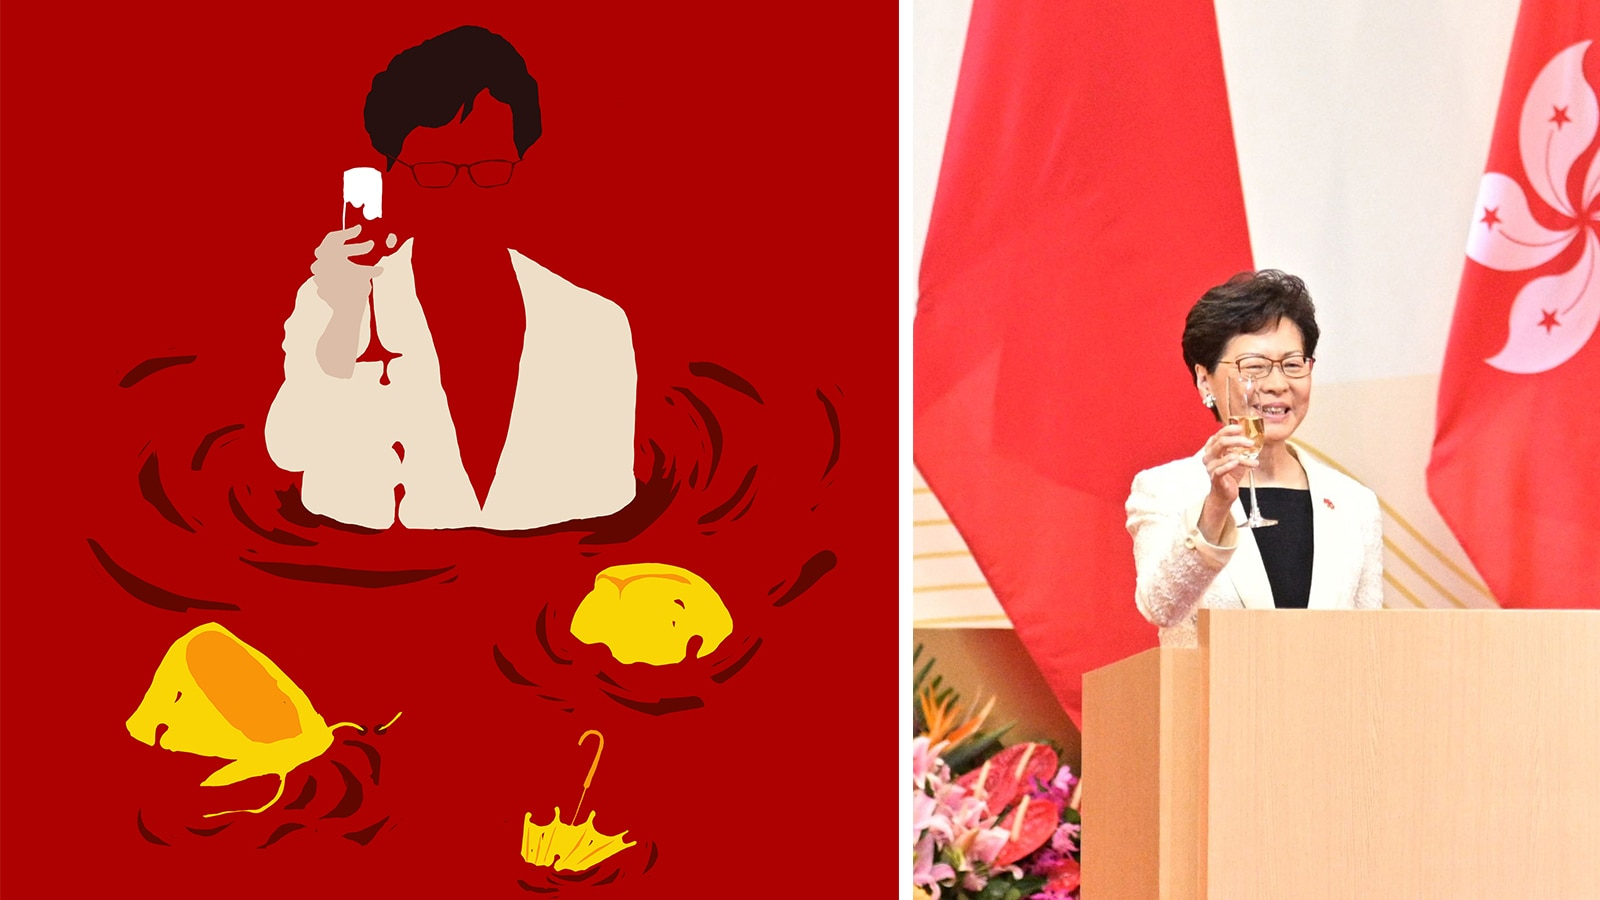 Carrie Lam's appearance at the handover ceremony was the first time she had been seen in public after an absence of more than 10 days.